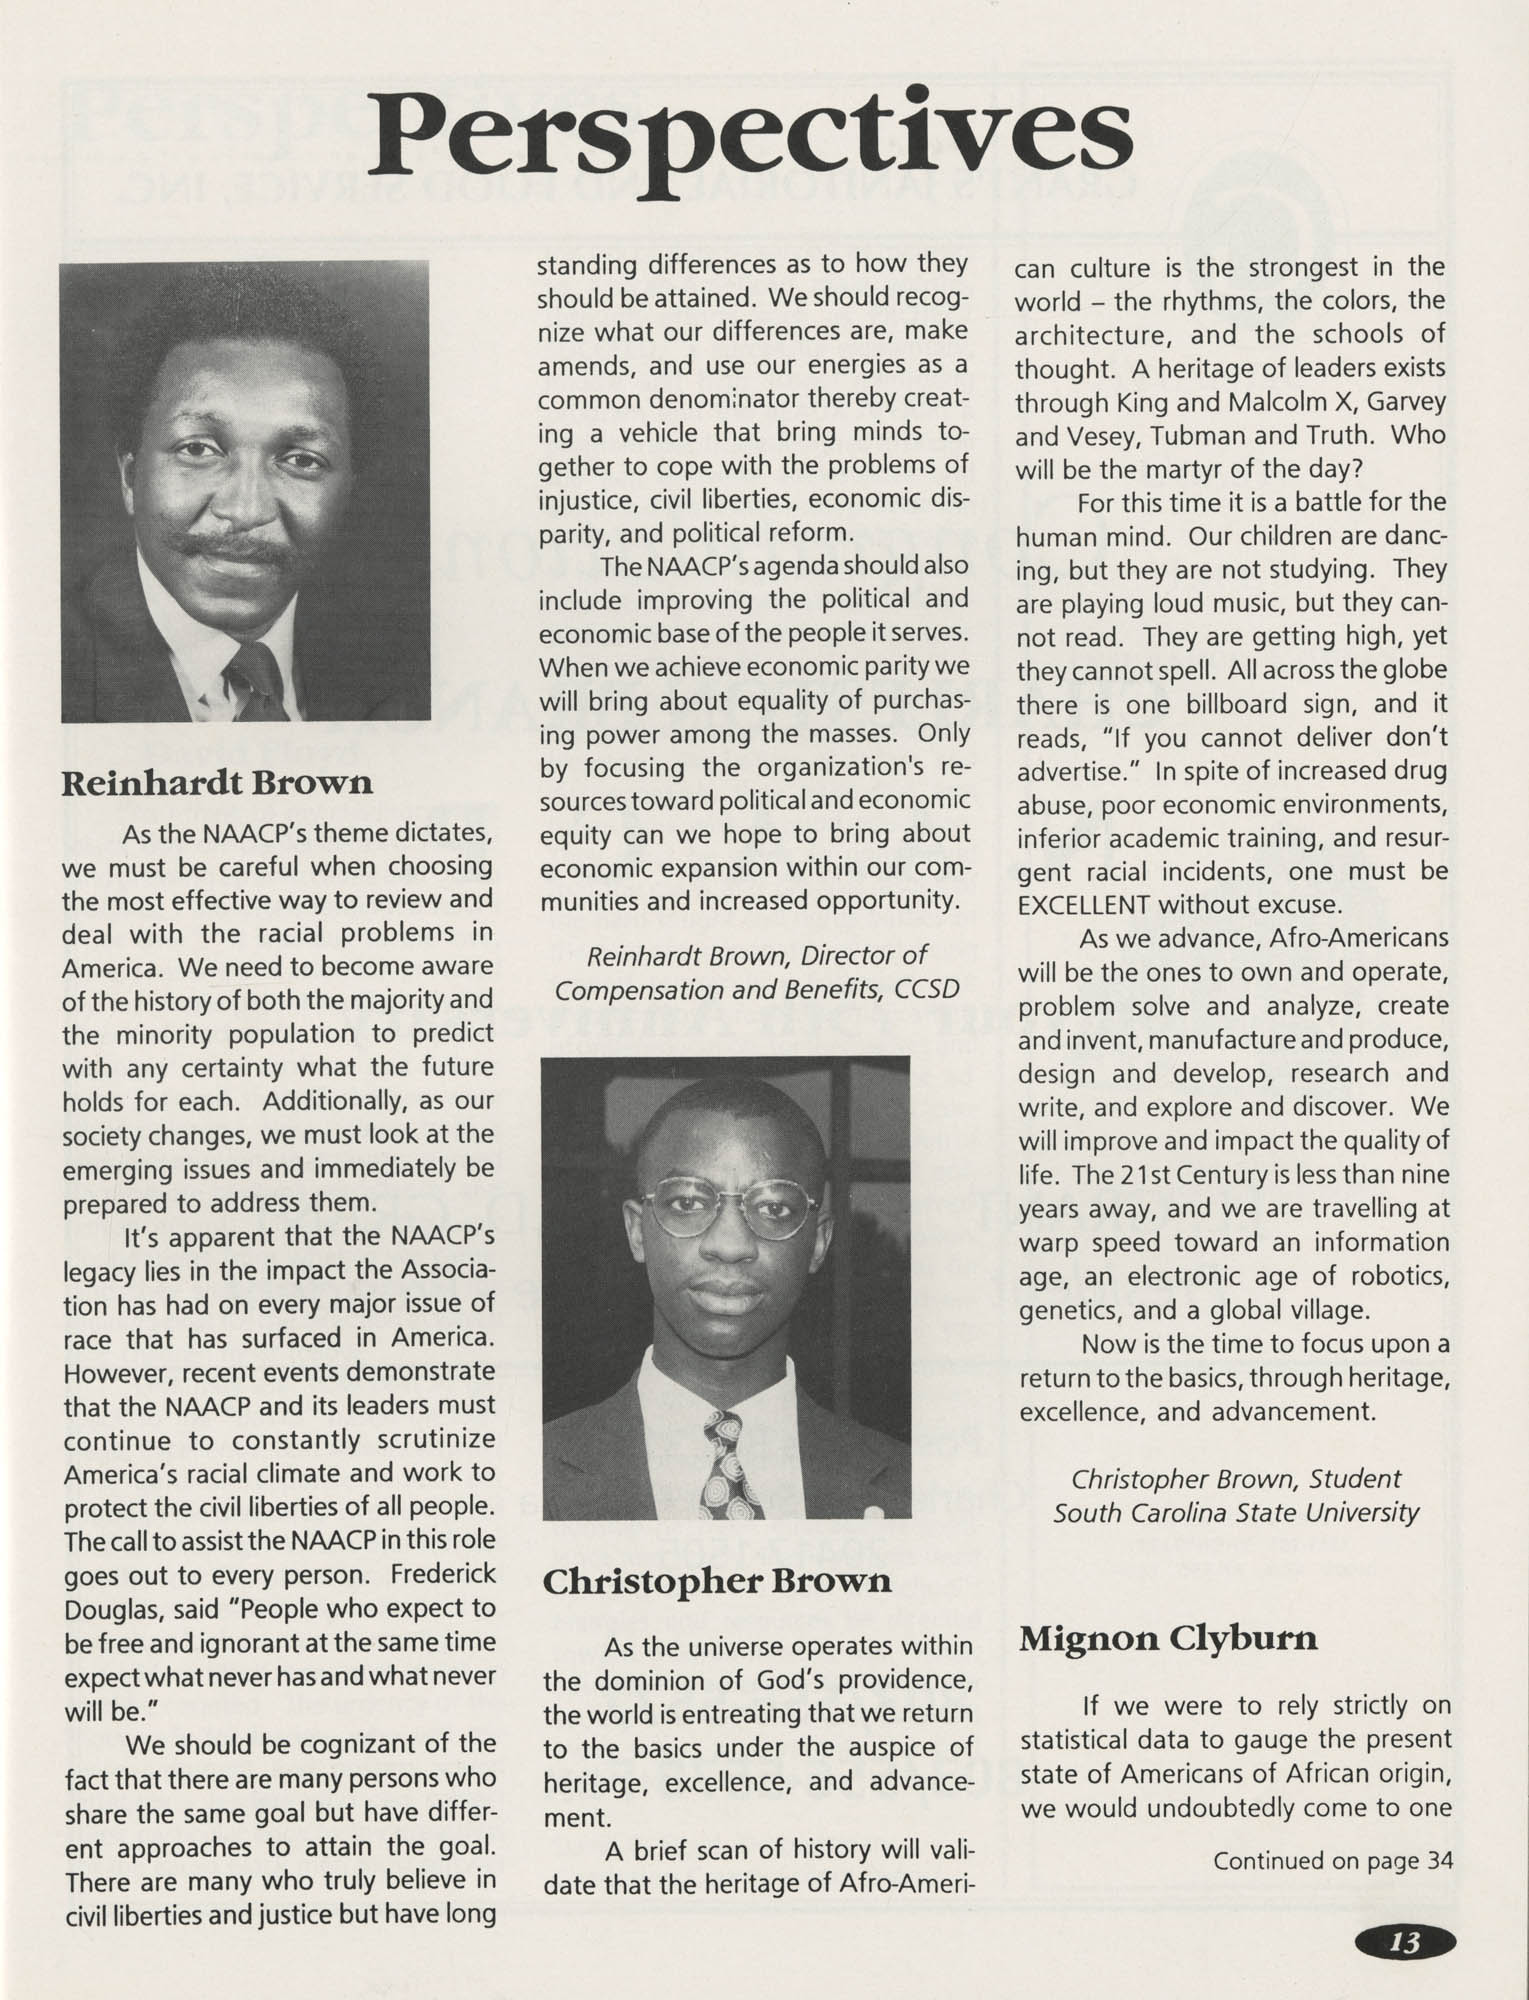 1991 Freedom Fund Magazine, Charleston Branch of the NAACP, Page 13